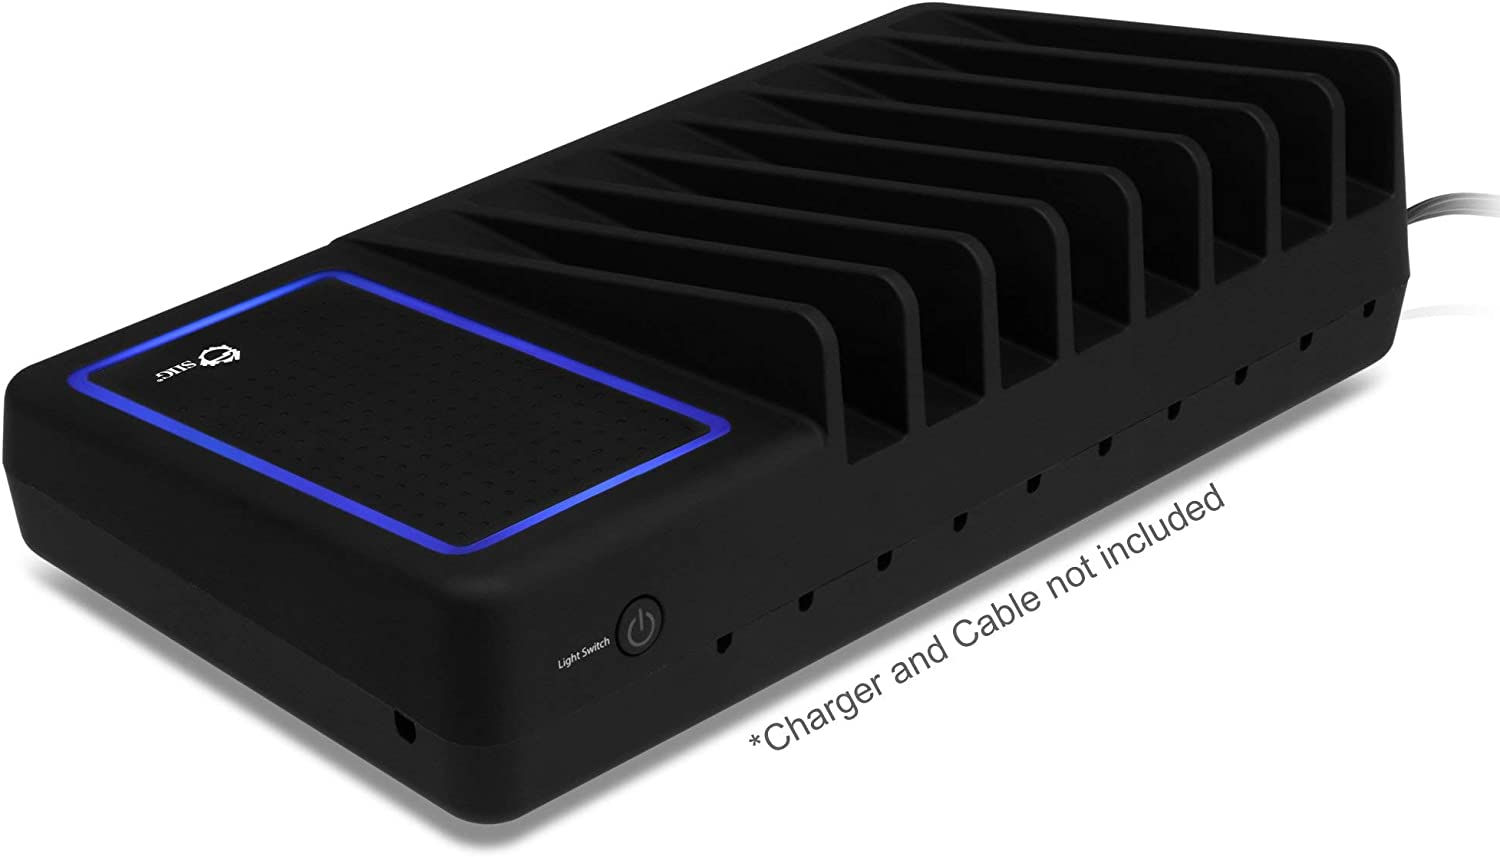 SIIG Desktop Universal 8-Slot Charging Device Organizer with Padded Ambient Light Deck and Internal Storage Space - Charging Device Not included - AC-CA0414-S1 (Black)